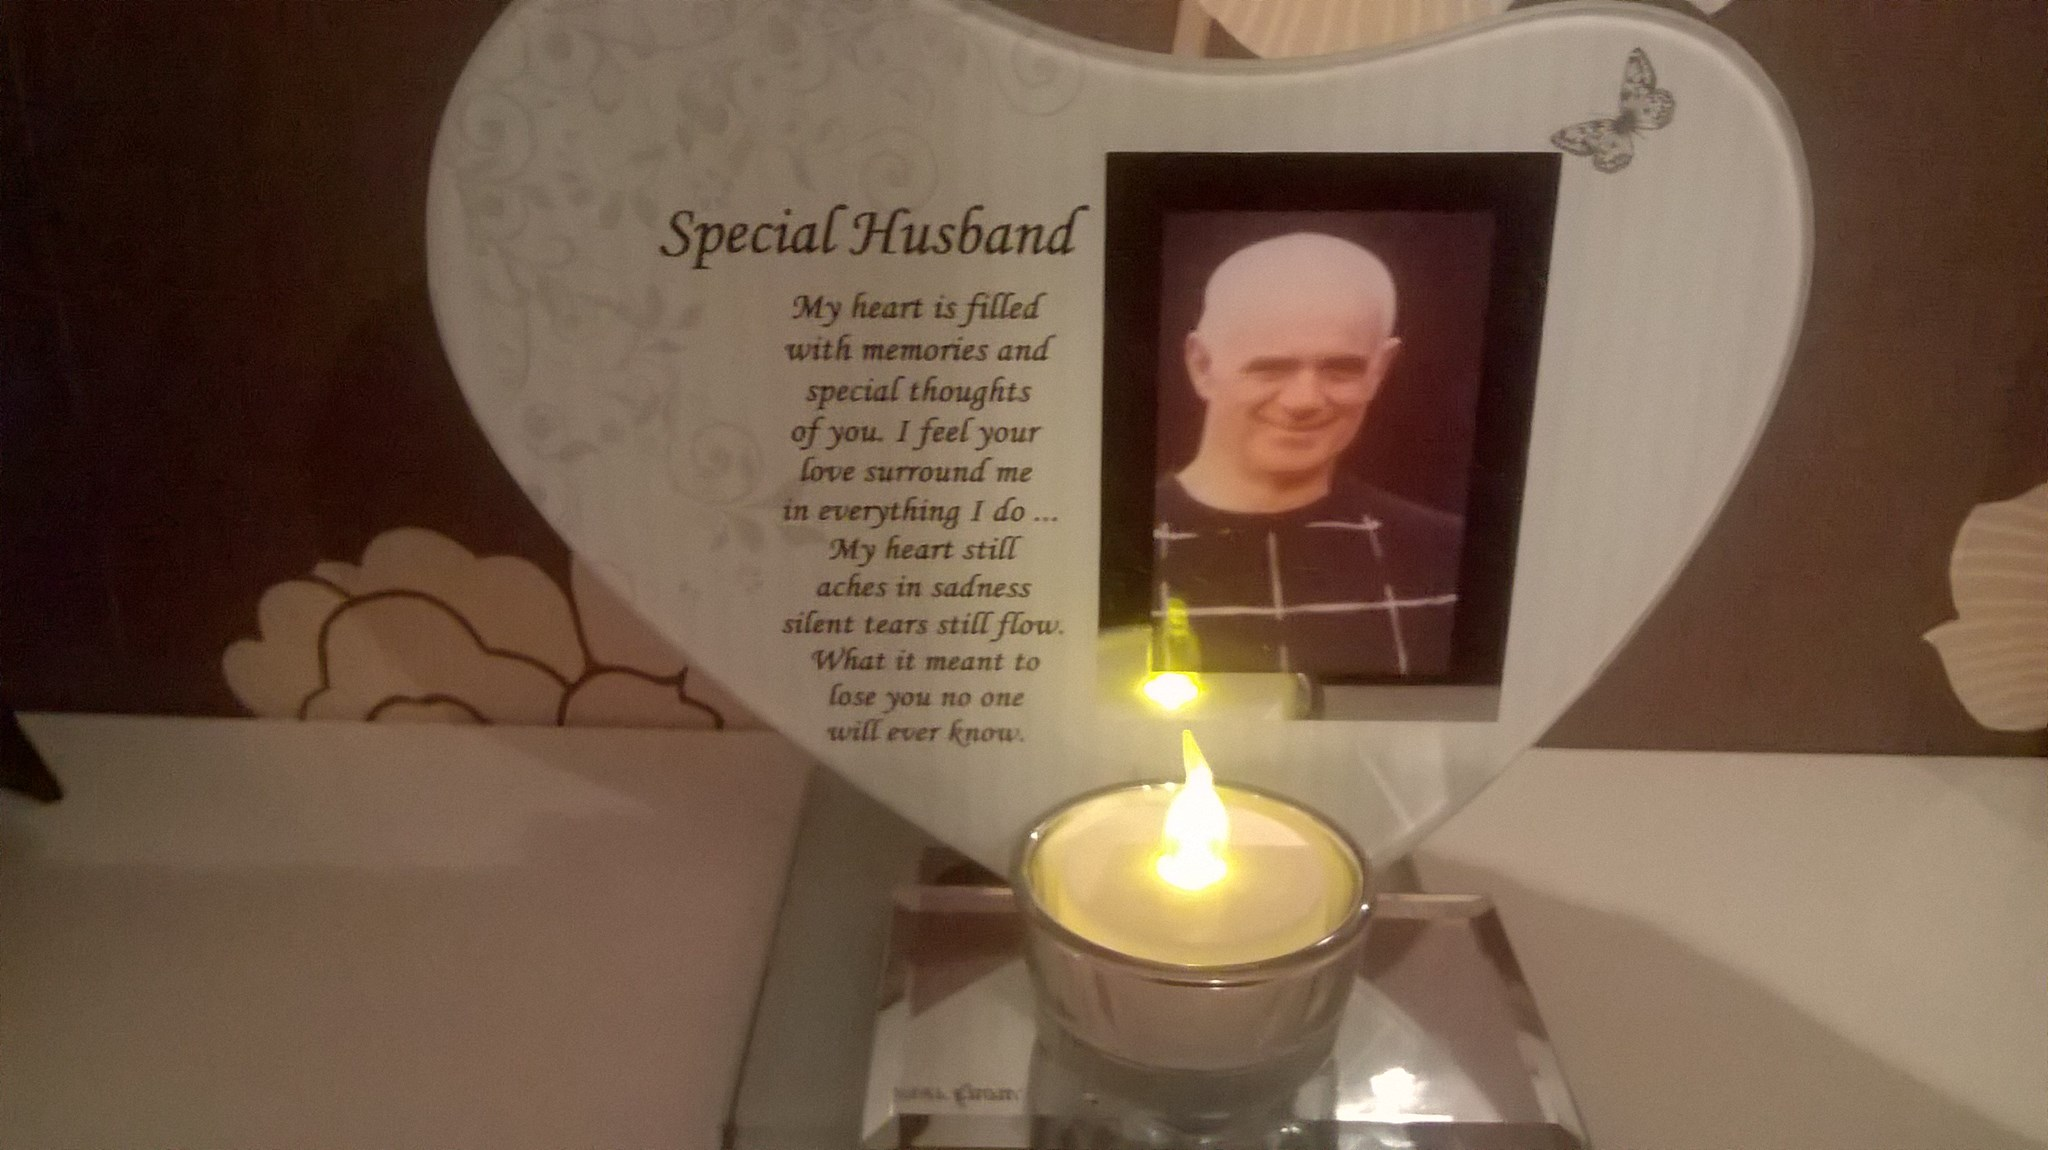 special husband in memory frame and candle